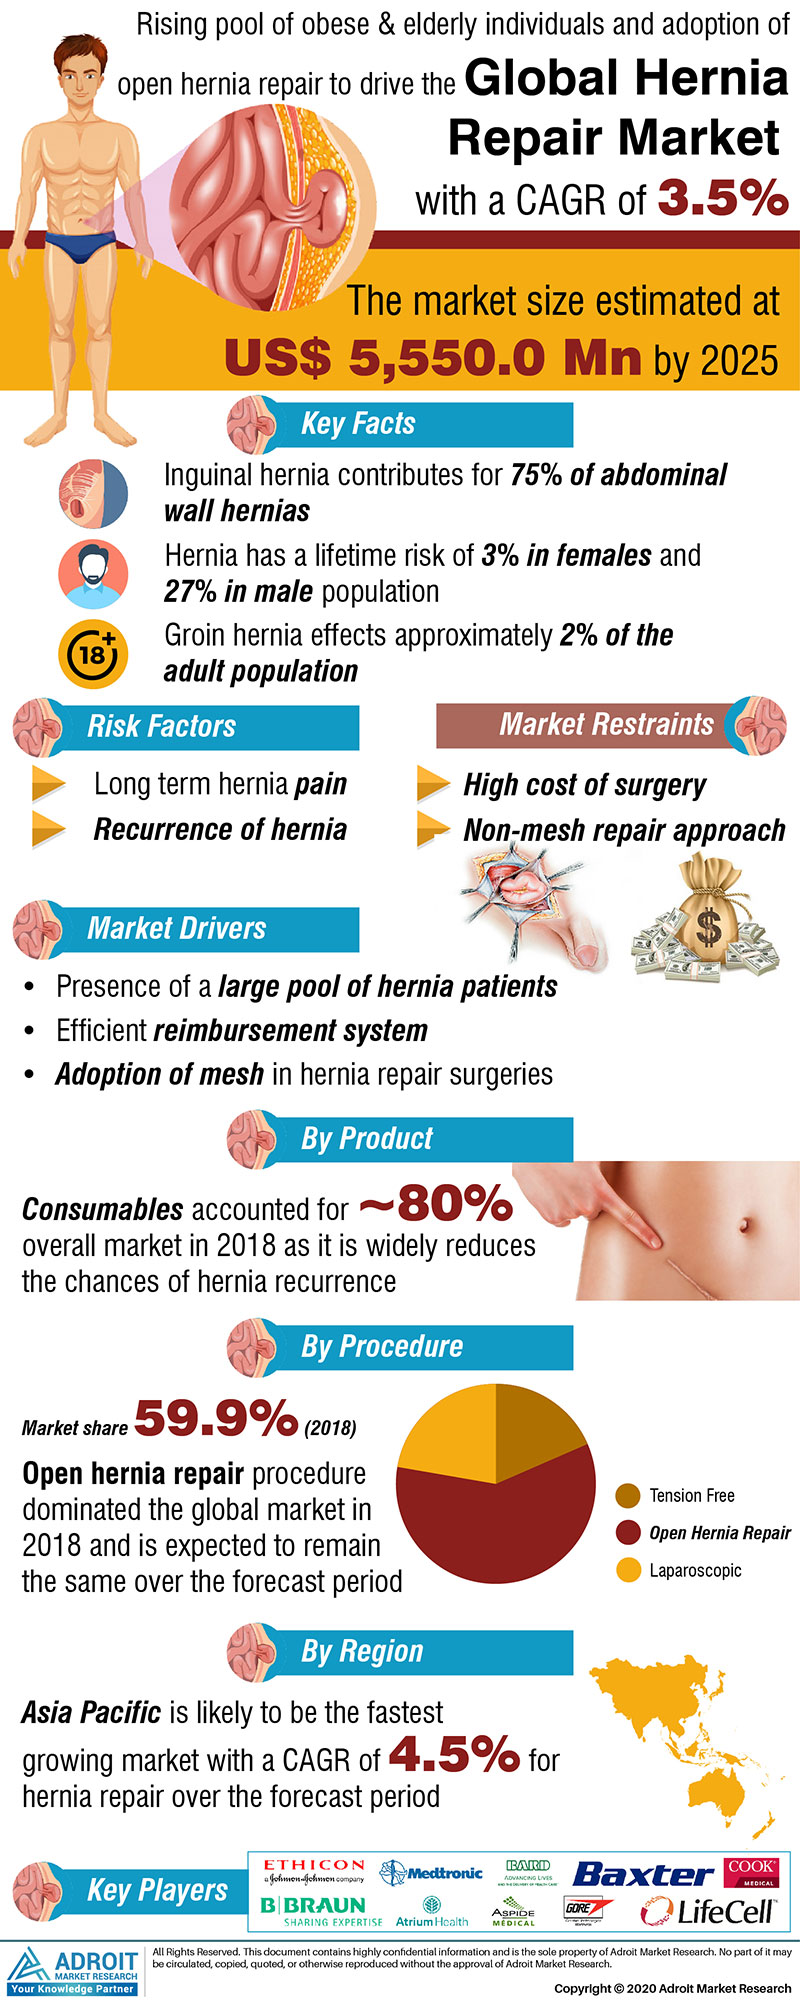 Global Hernia Repair Market Size 2017 By Product, Procedure, Region and Forecast 2018 to 2025